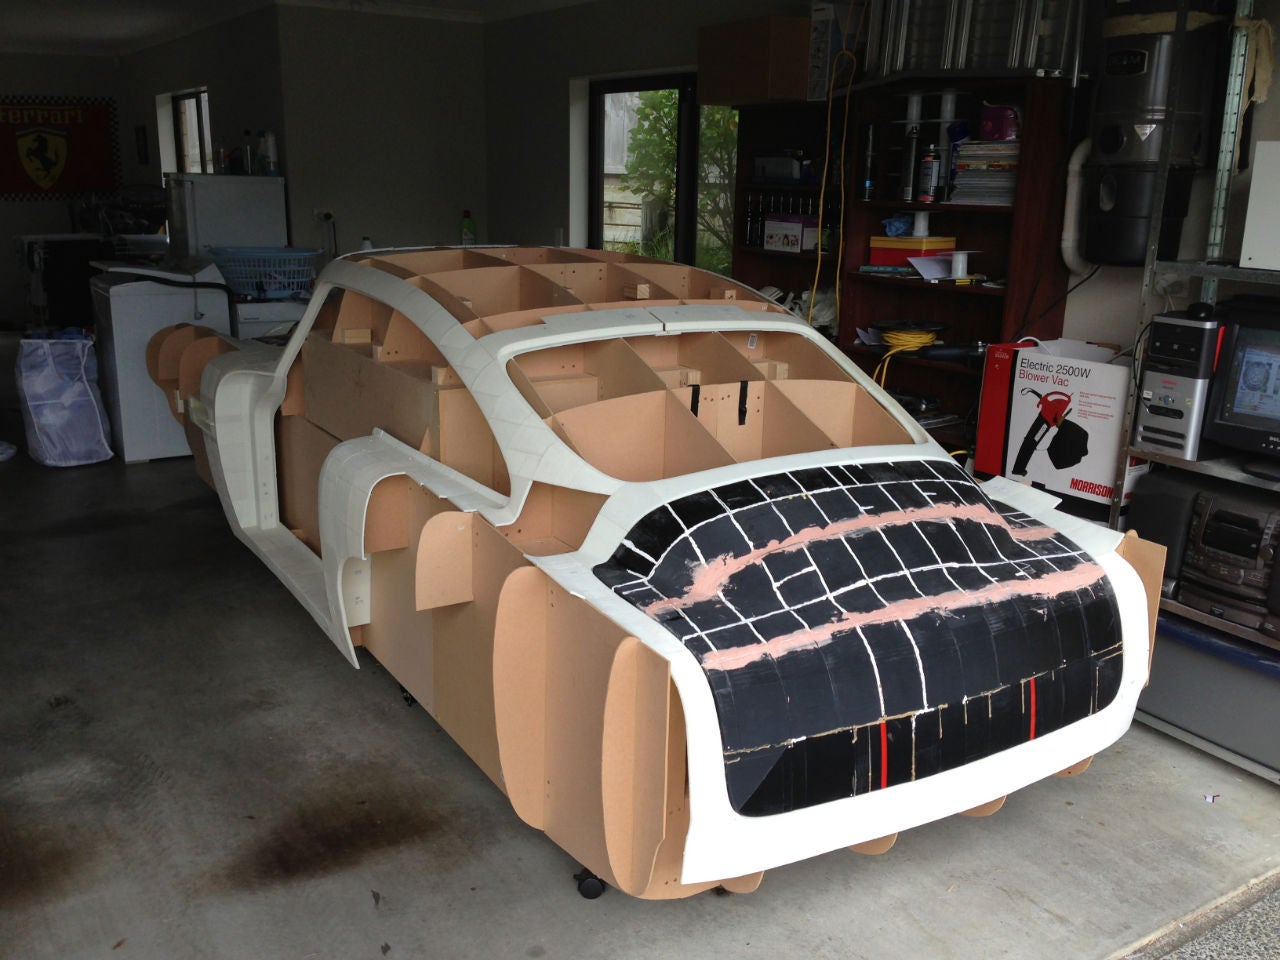 Meet the man who is 3D-printing a replica of a car | PCWorld